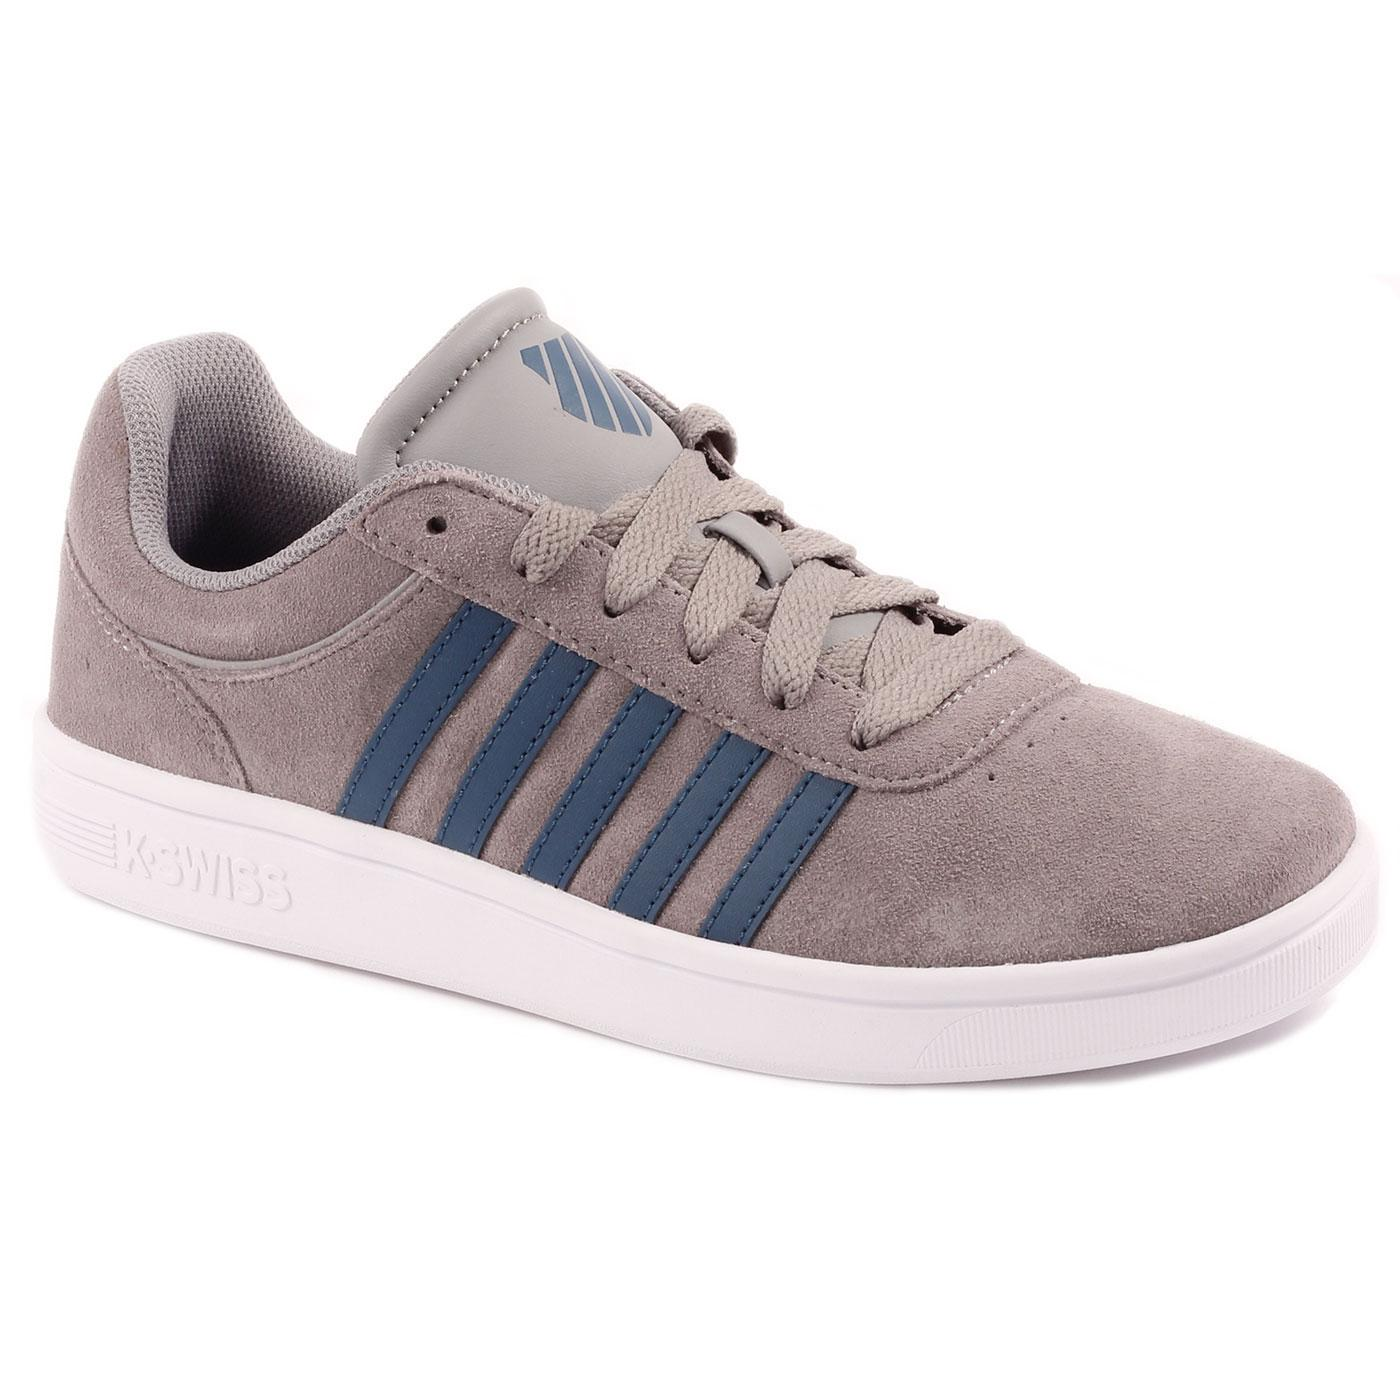 Court Cheswick Suede K-SWISS Retro Trainers S/P/W